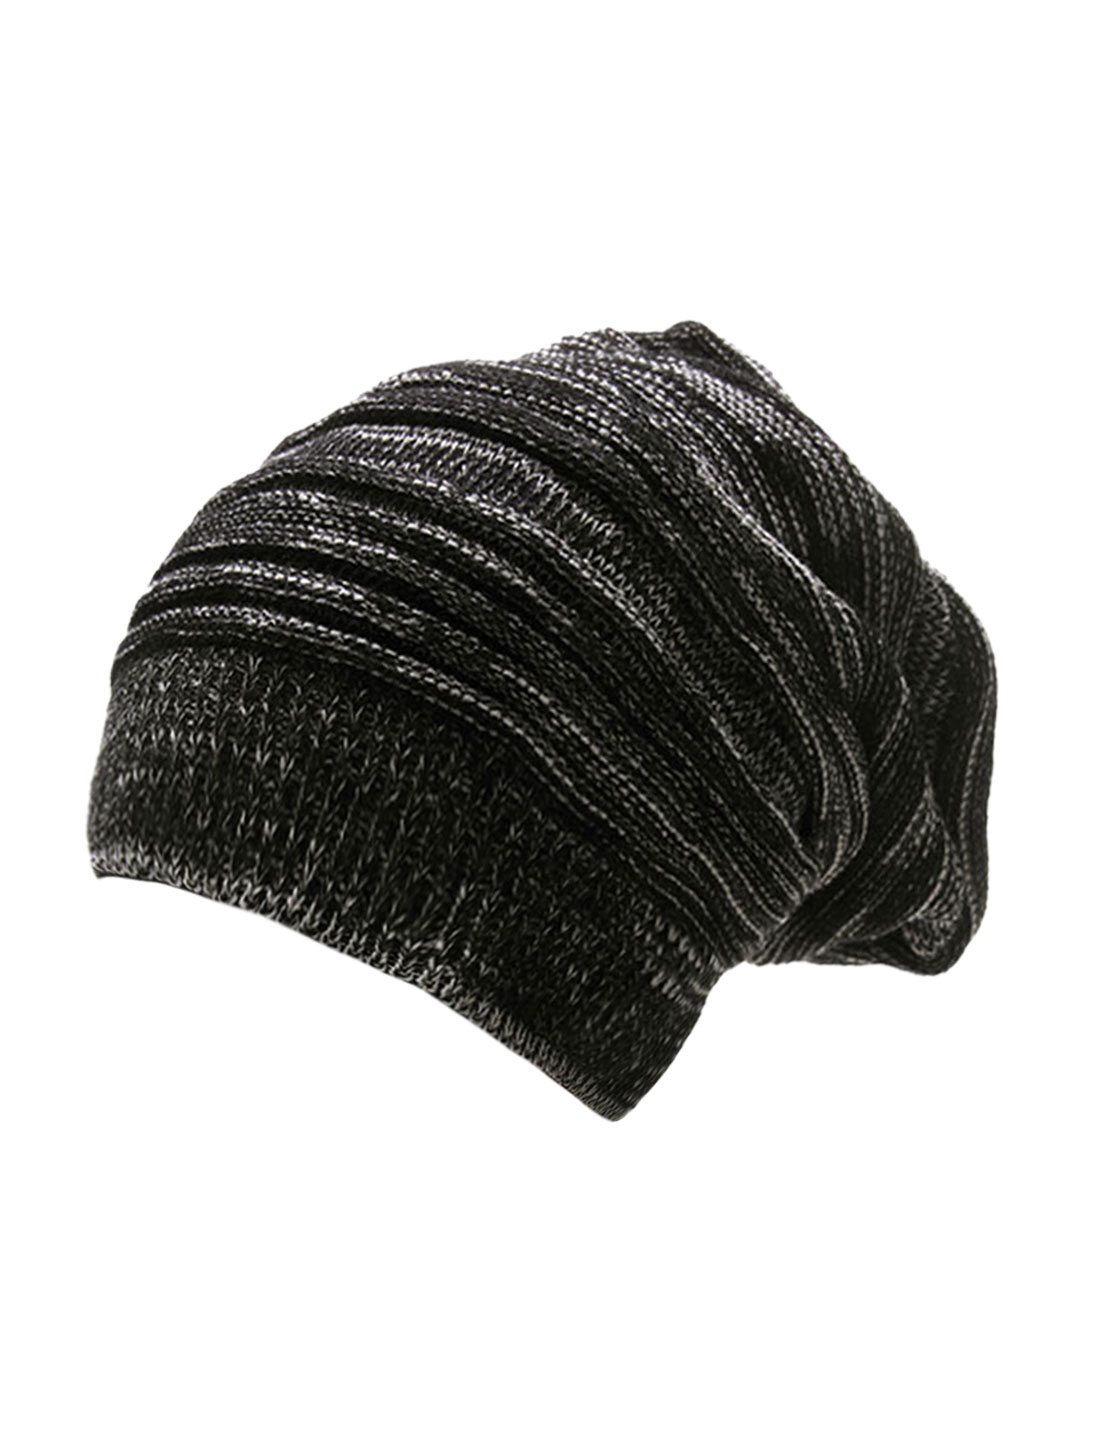 Men Black Off-White Textured Design Stretch Knit Cap Beanie Hat